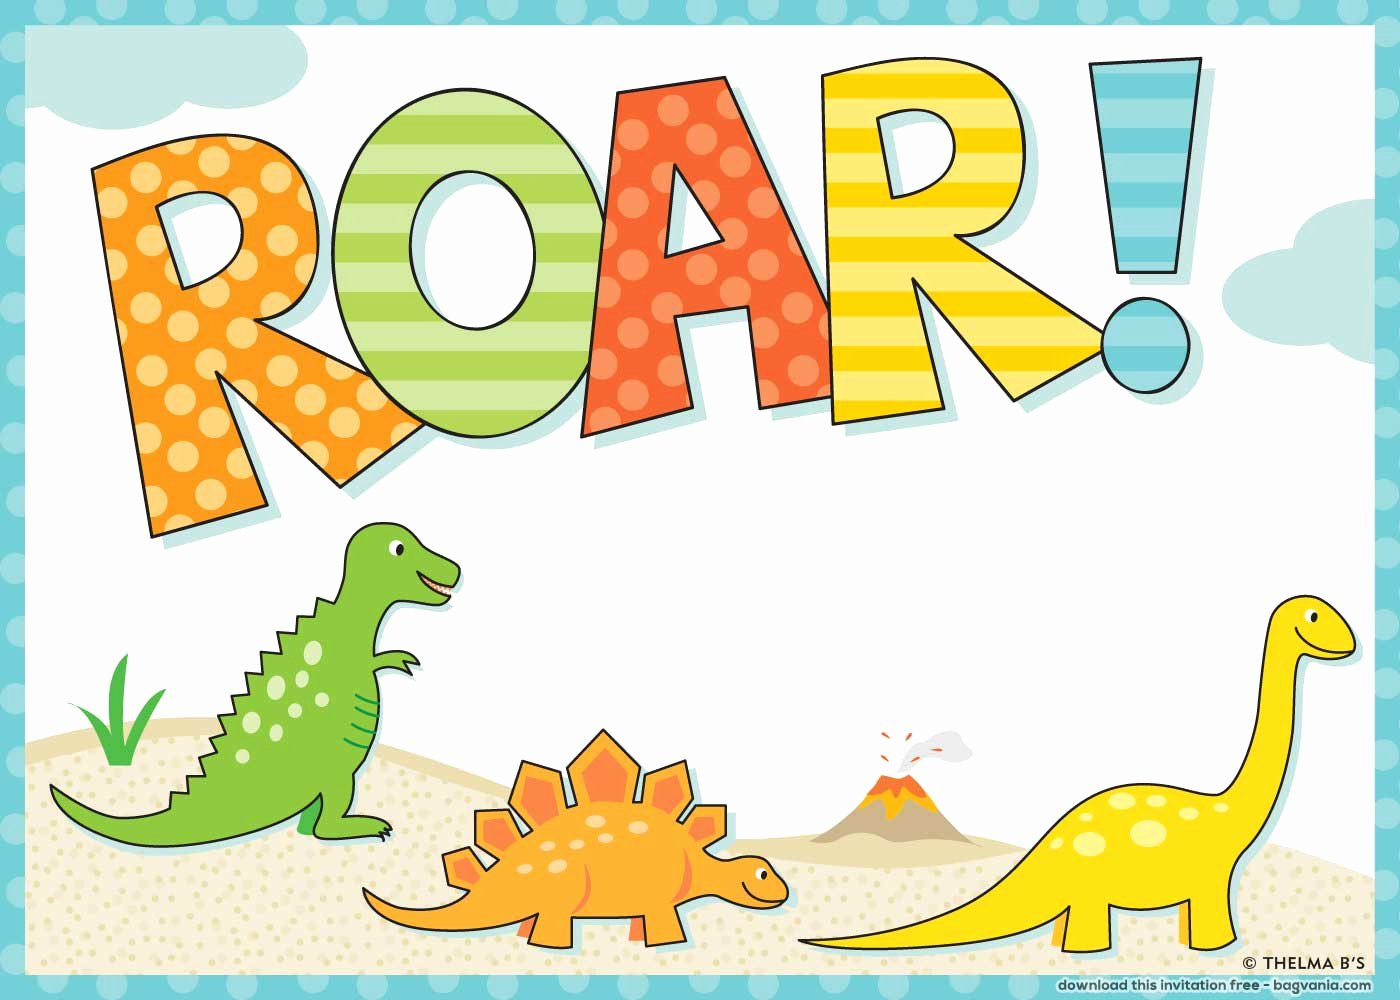 Dinosaur Invitations Free Printable New Free Dinosaur Birthday Invitations – Free Printable